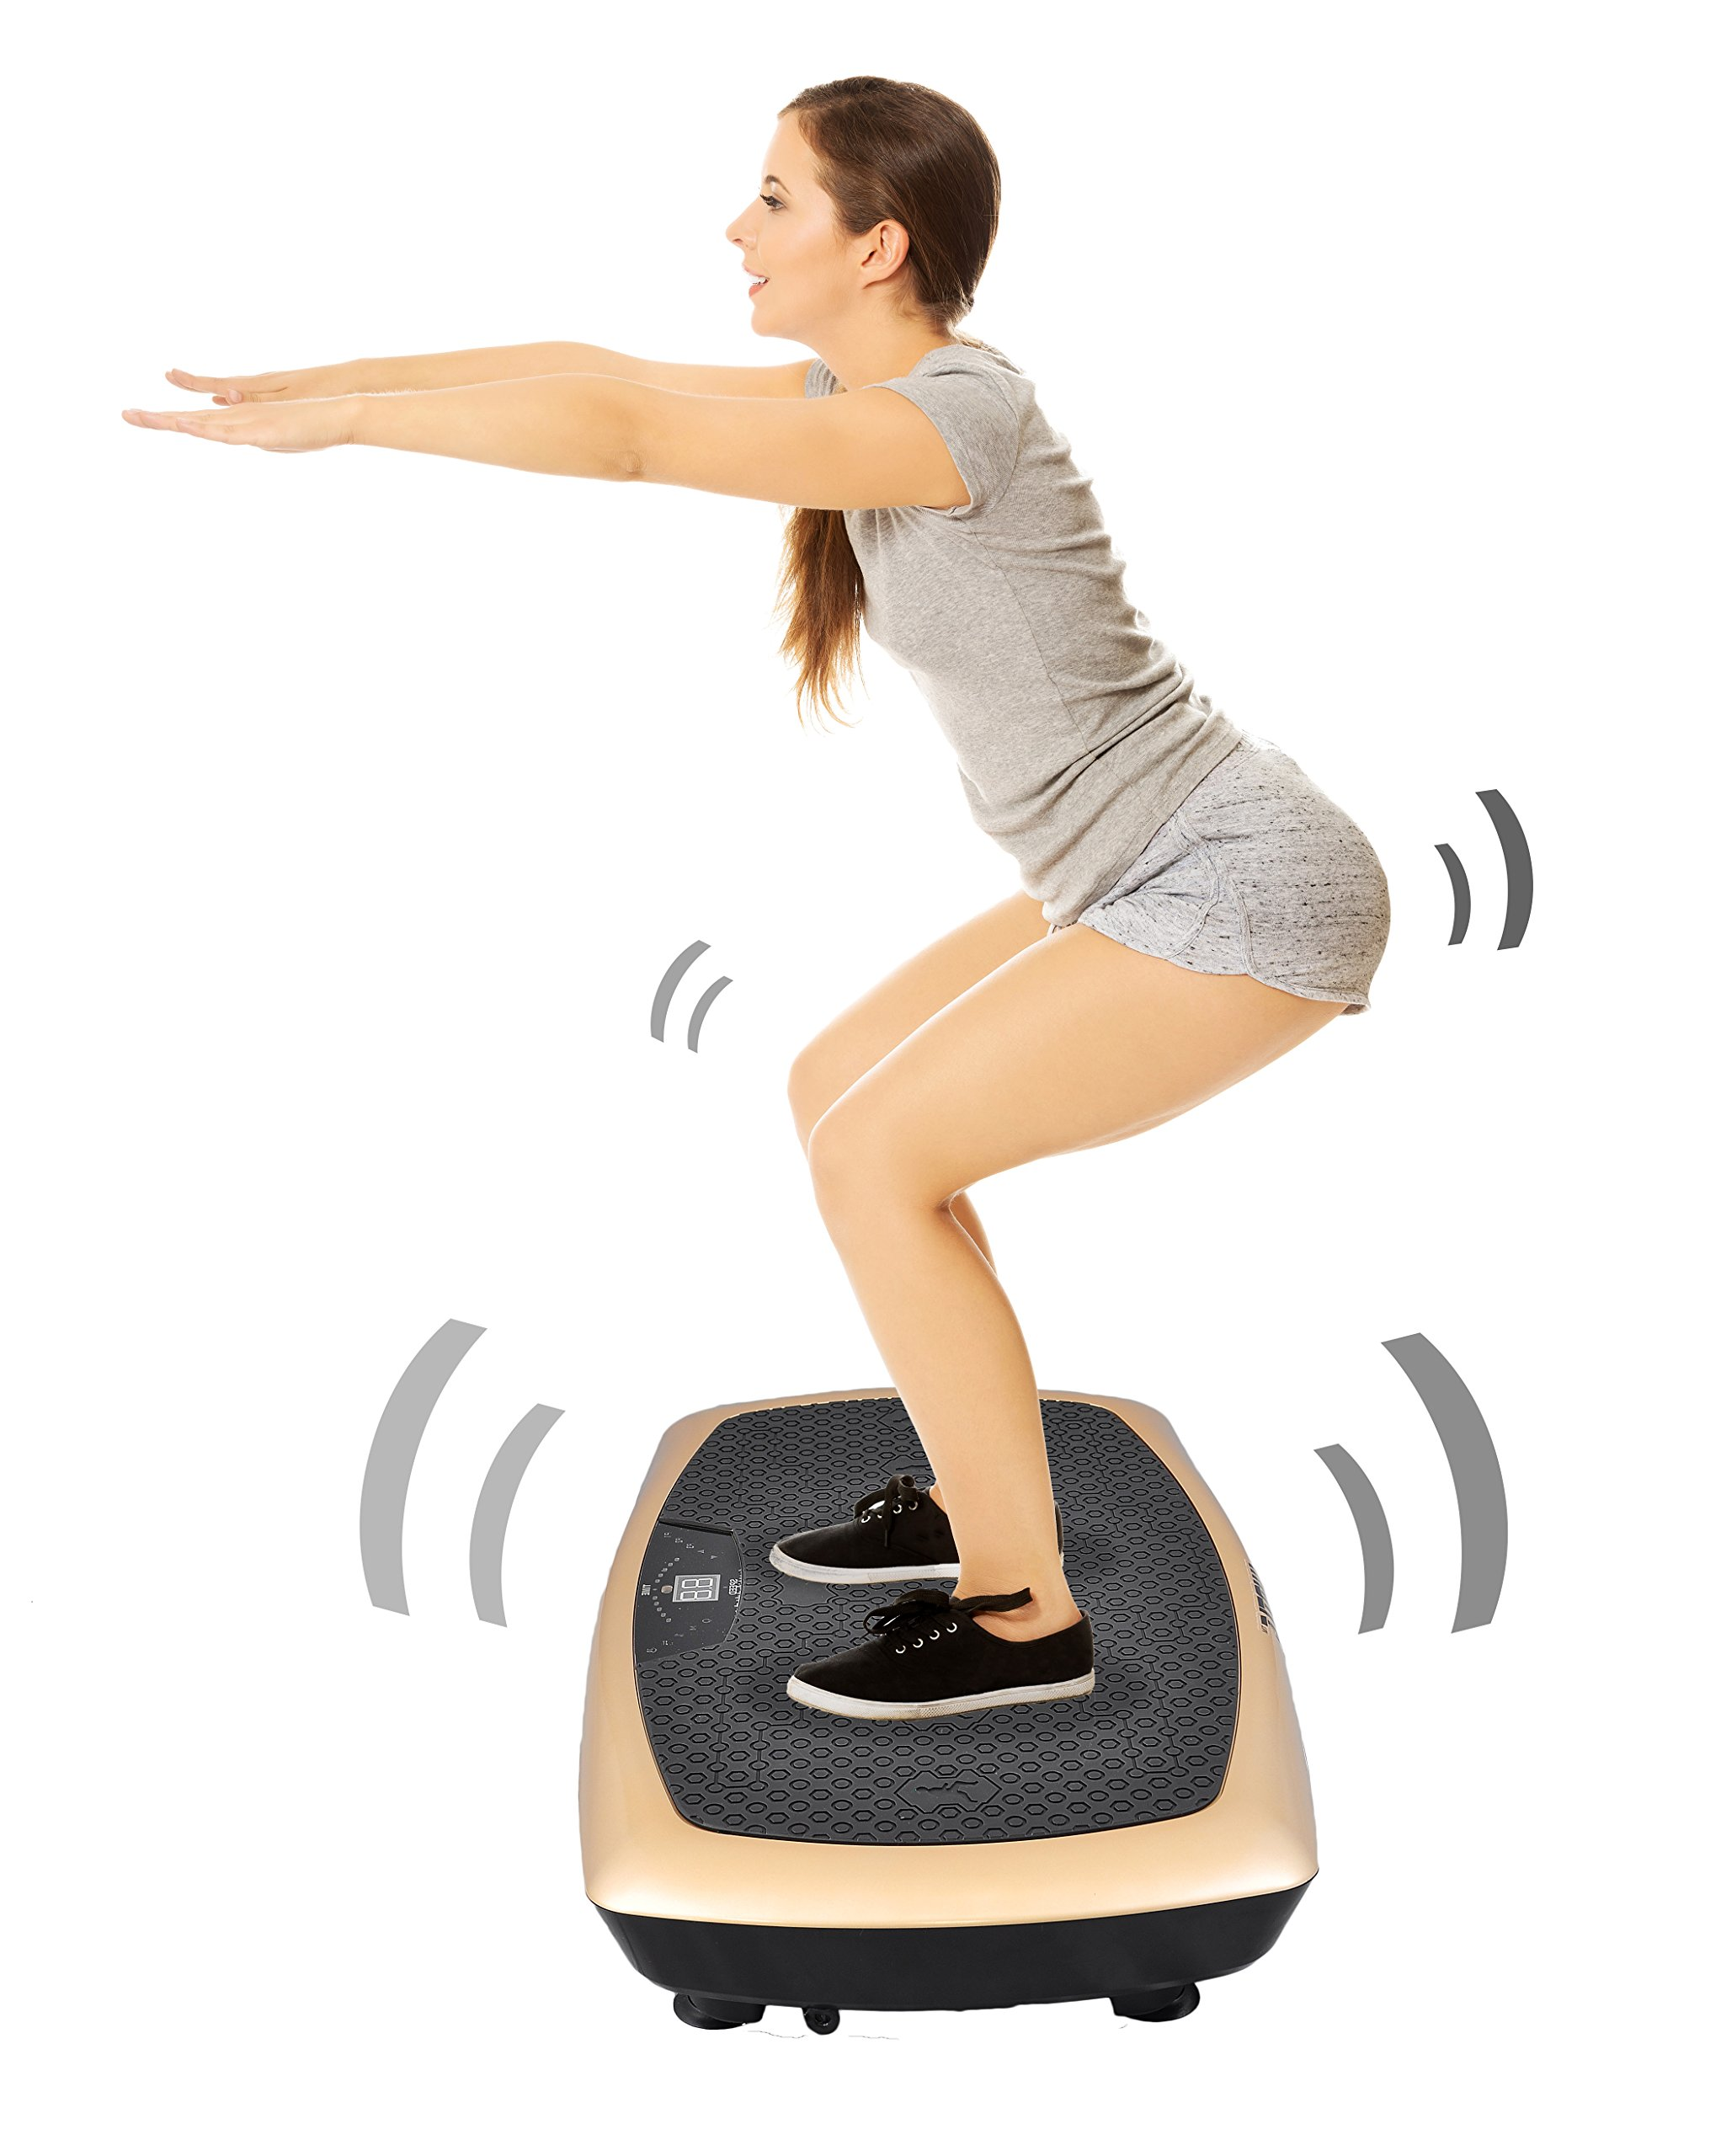 Updated Hurtle Fitness Machine Vibration Platform, Fat Burning, Full Body Training, Workout Trainer, 400 Watt, Speed Adjuster, Lab Tested - Toning For Abs, Thighs & Buttocks (HURVBTR60) by Hurtle (Image #6)